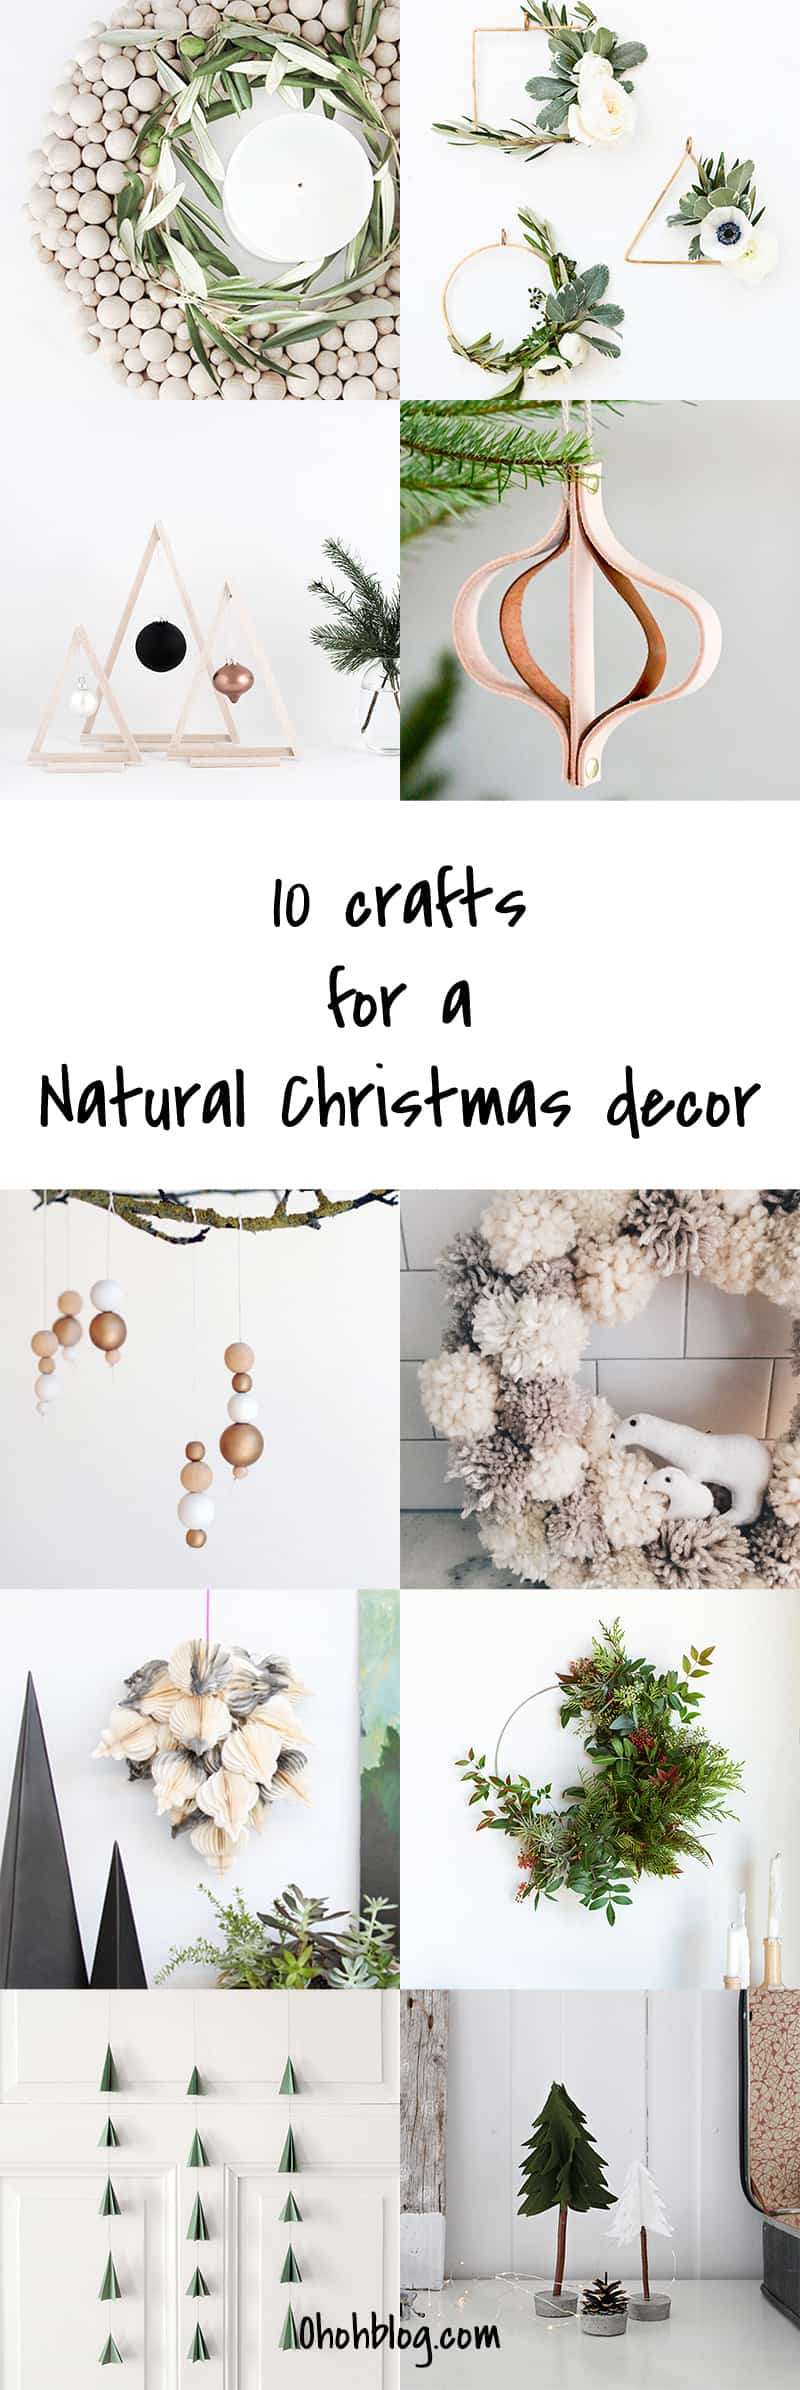 10 DIY Natural hygge Christmas decor